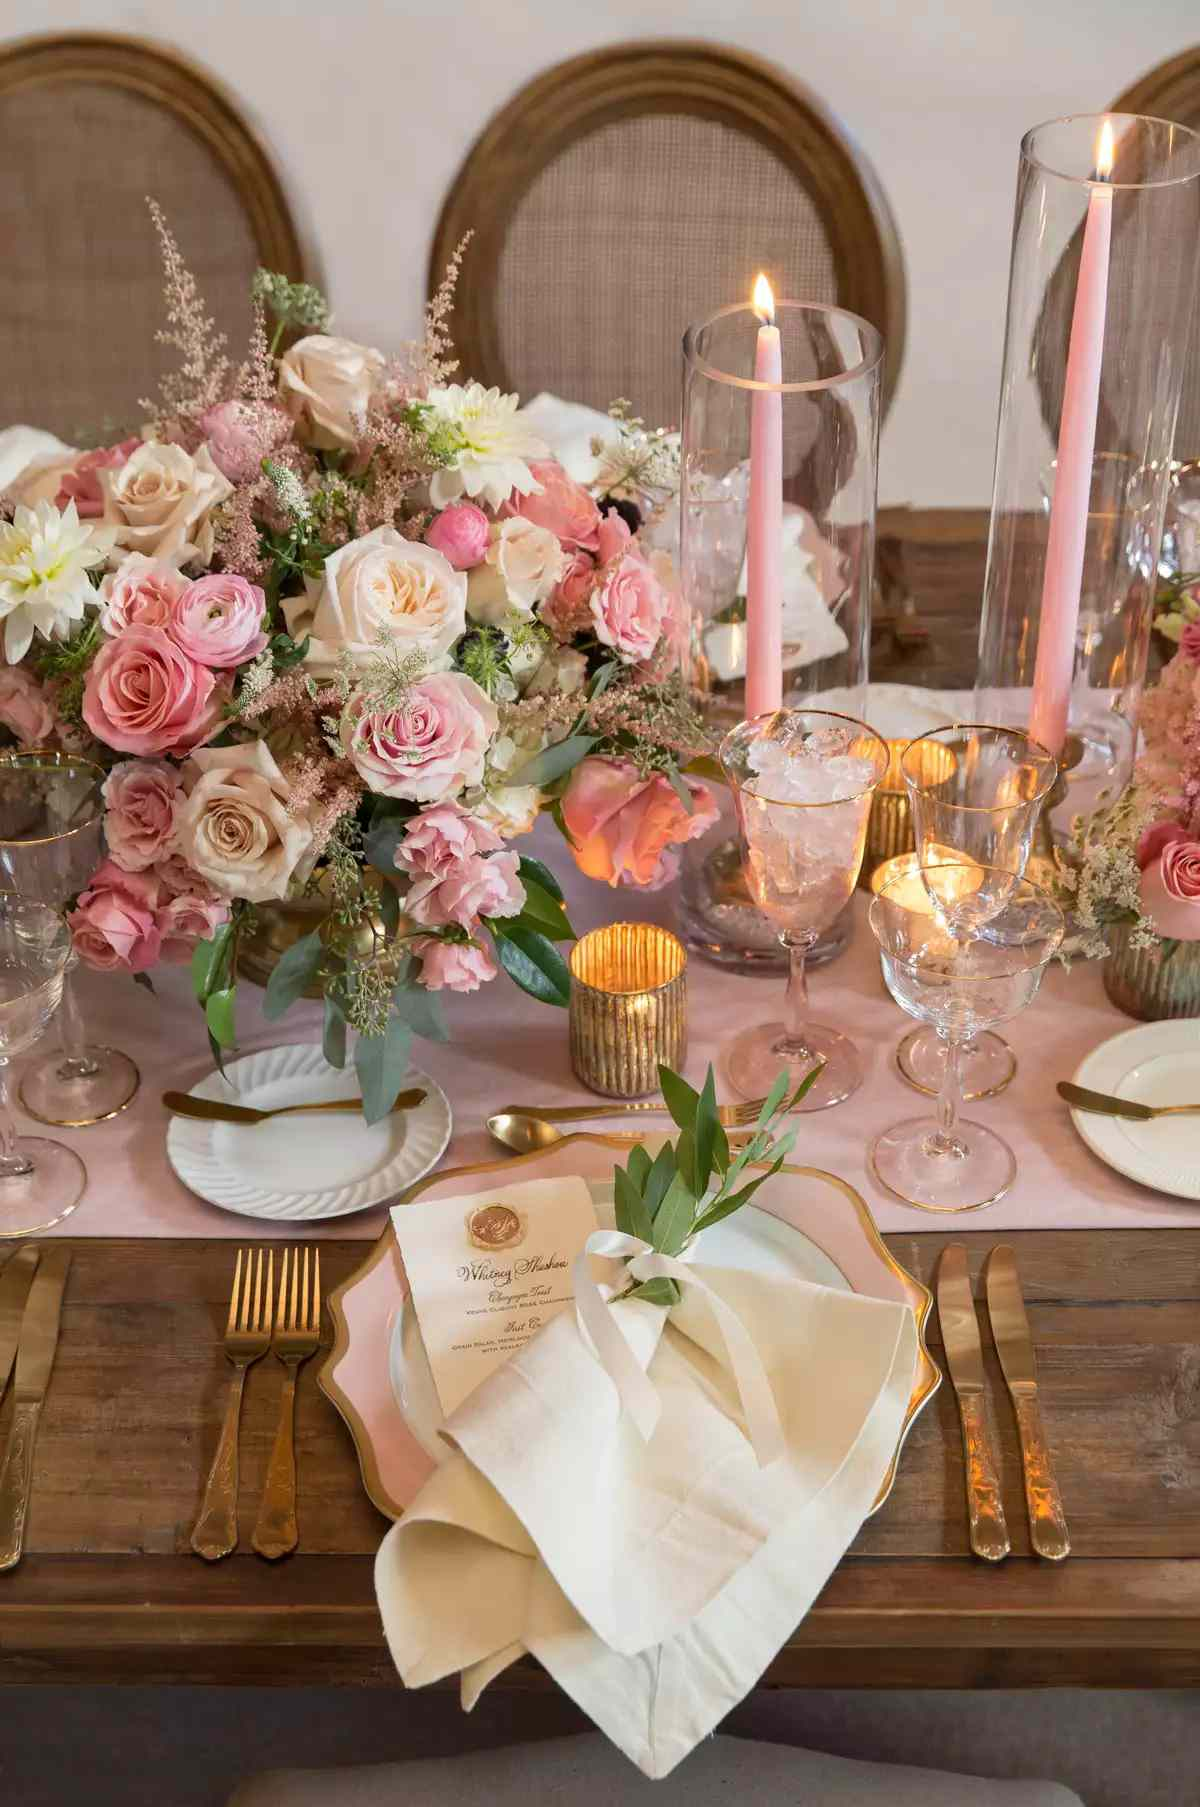 pink and white rose centerpiece